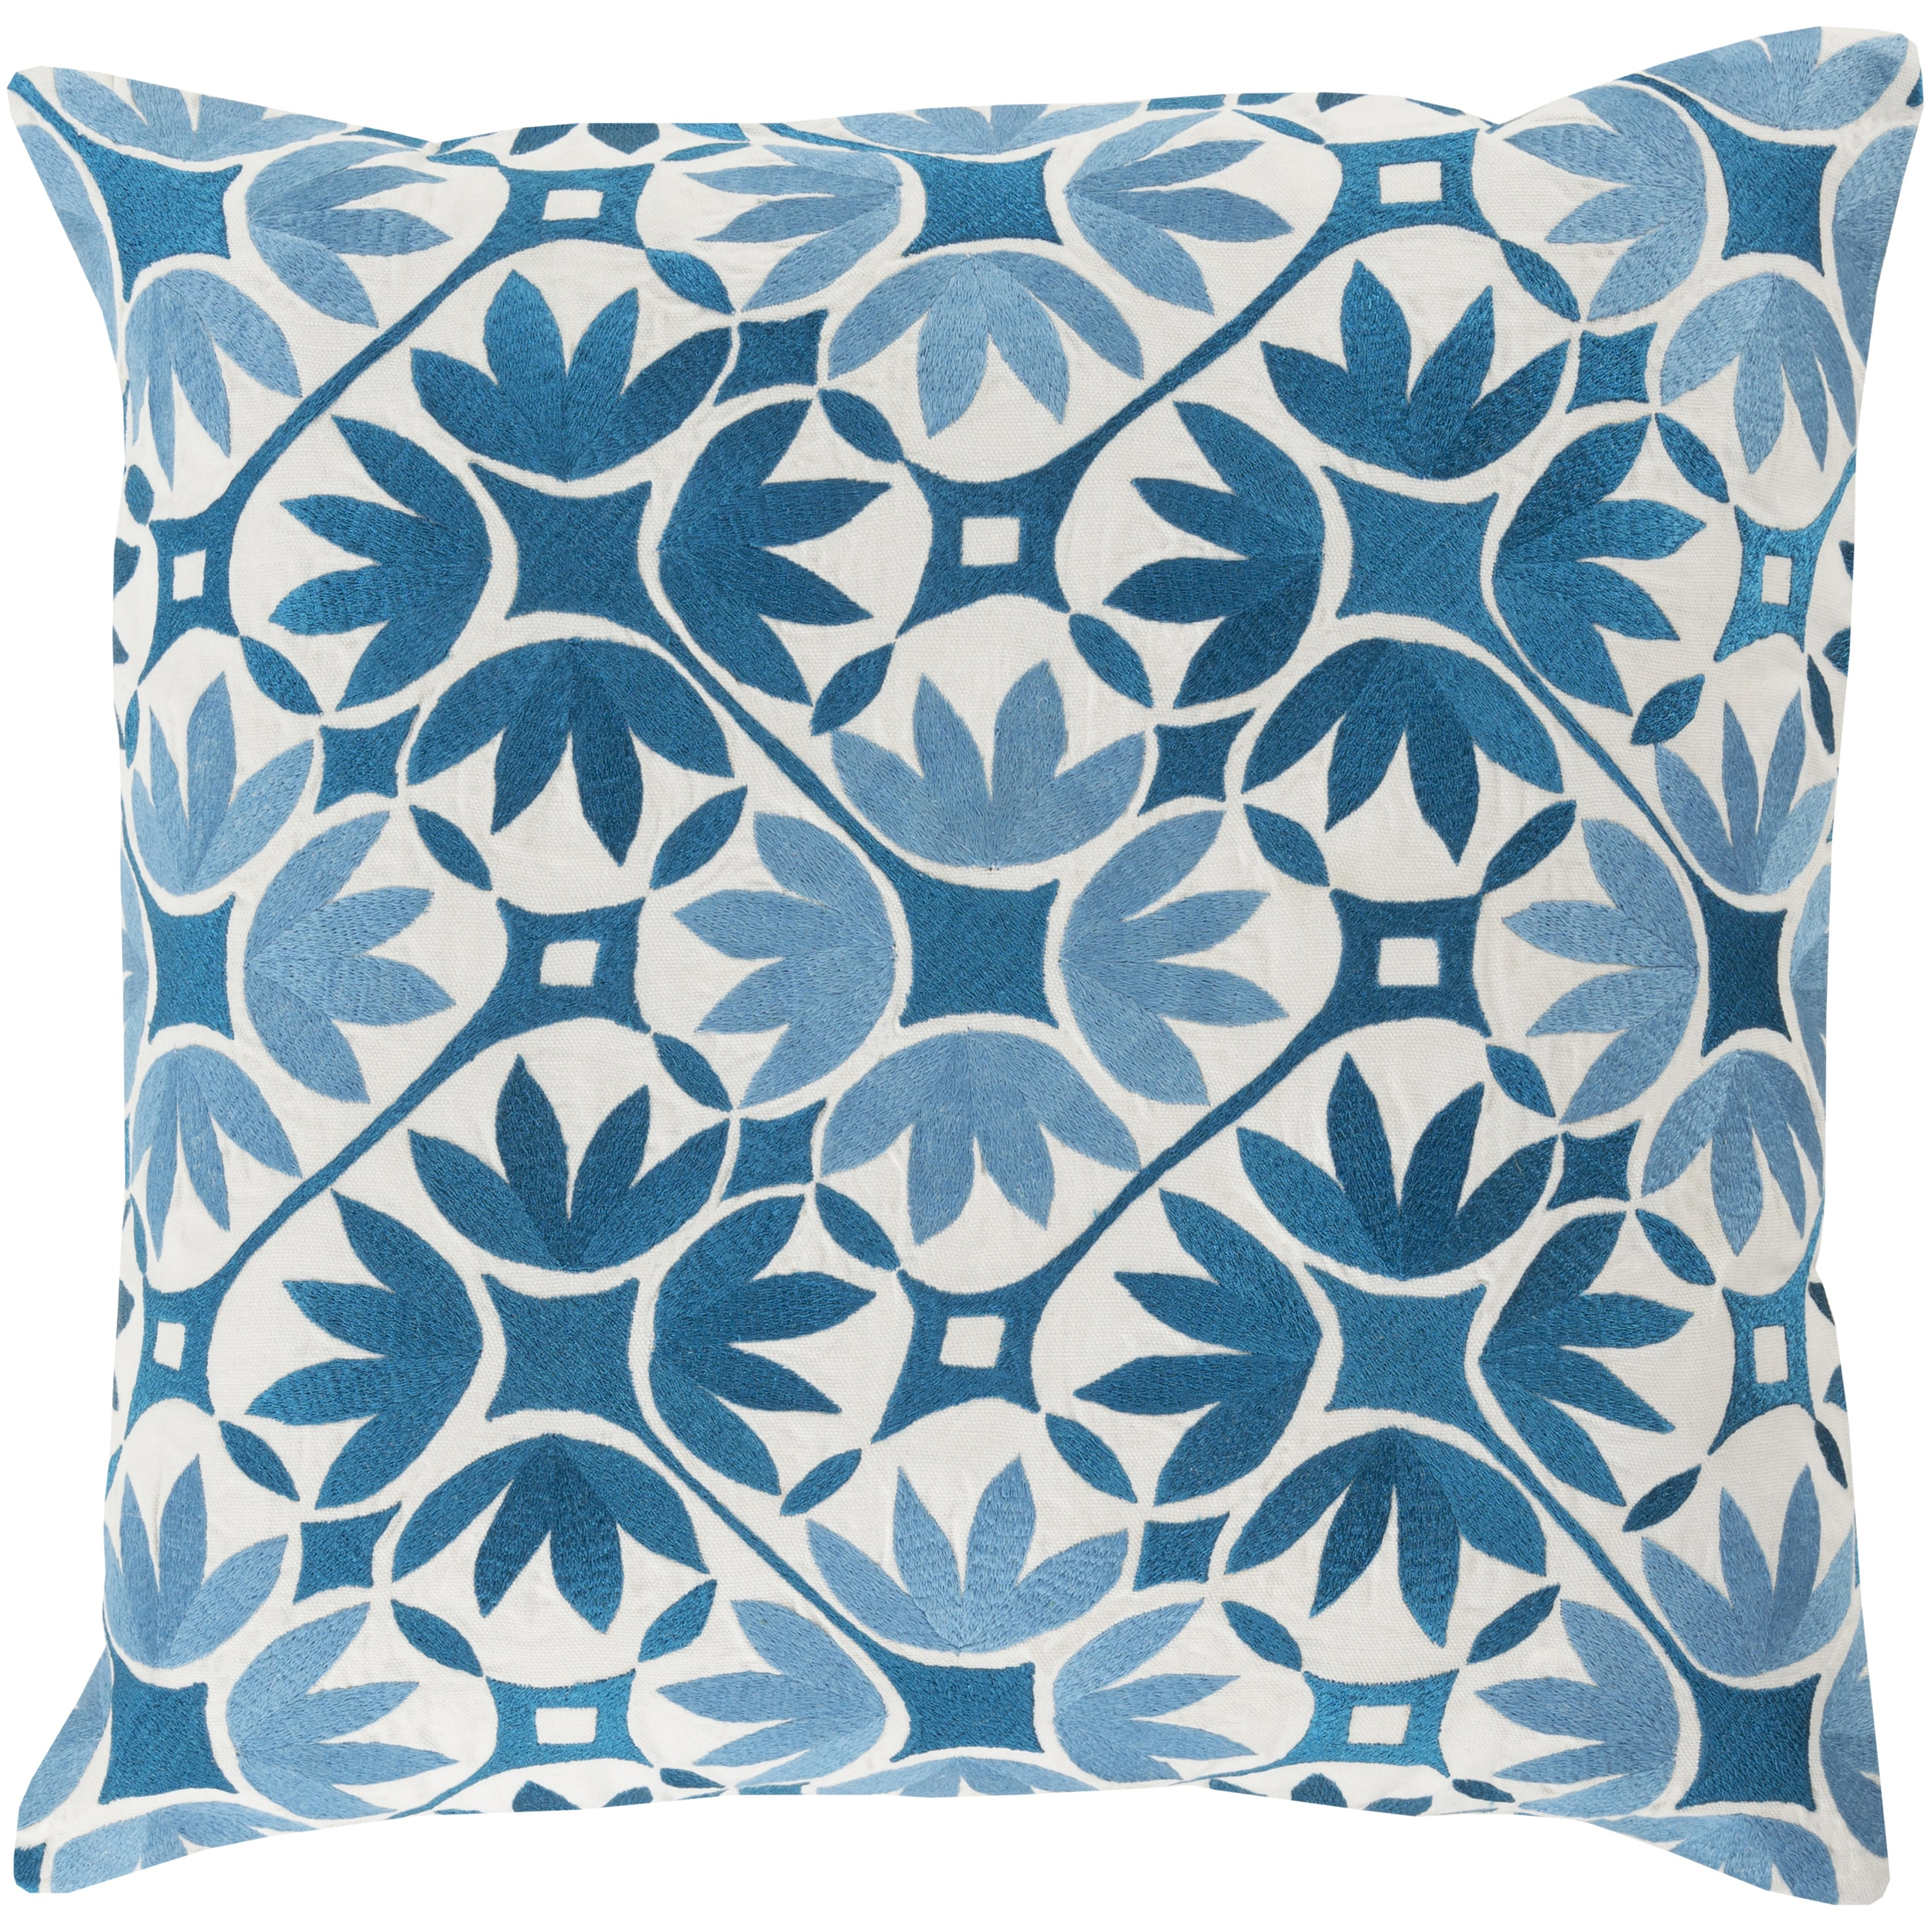 Decorative Carole Floral 18-inch Throw Pillow (Polyester)